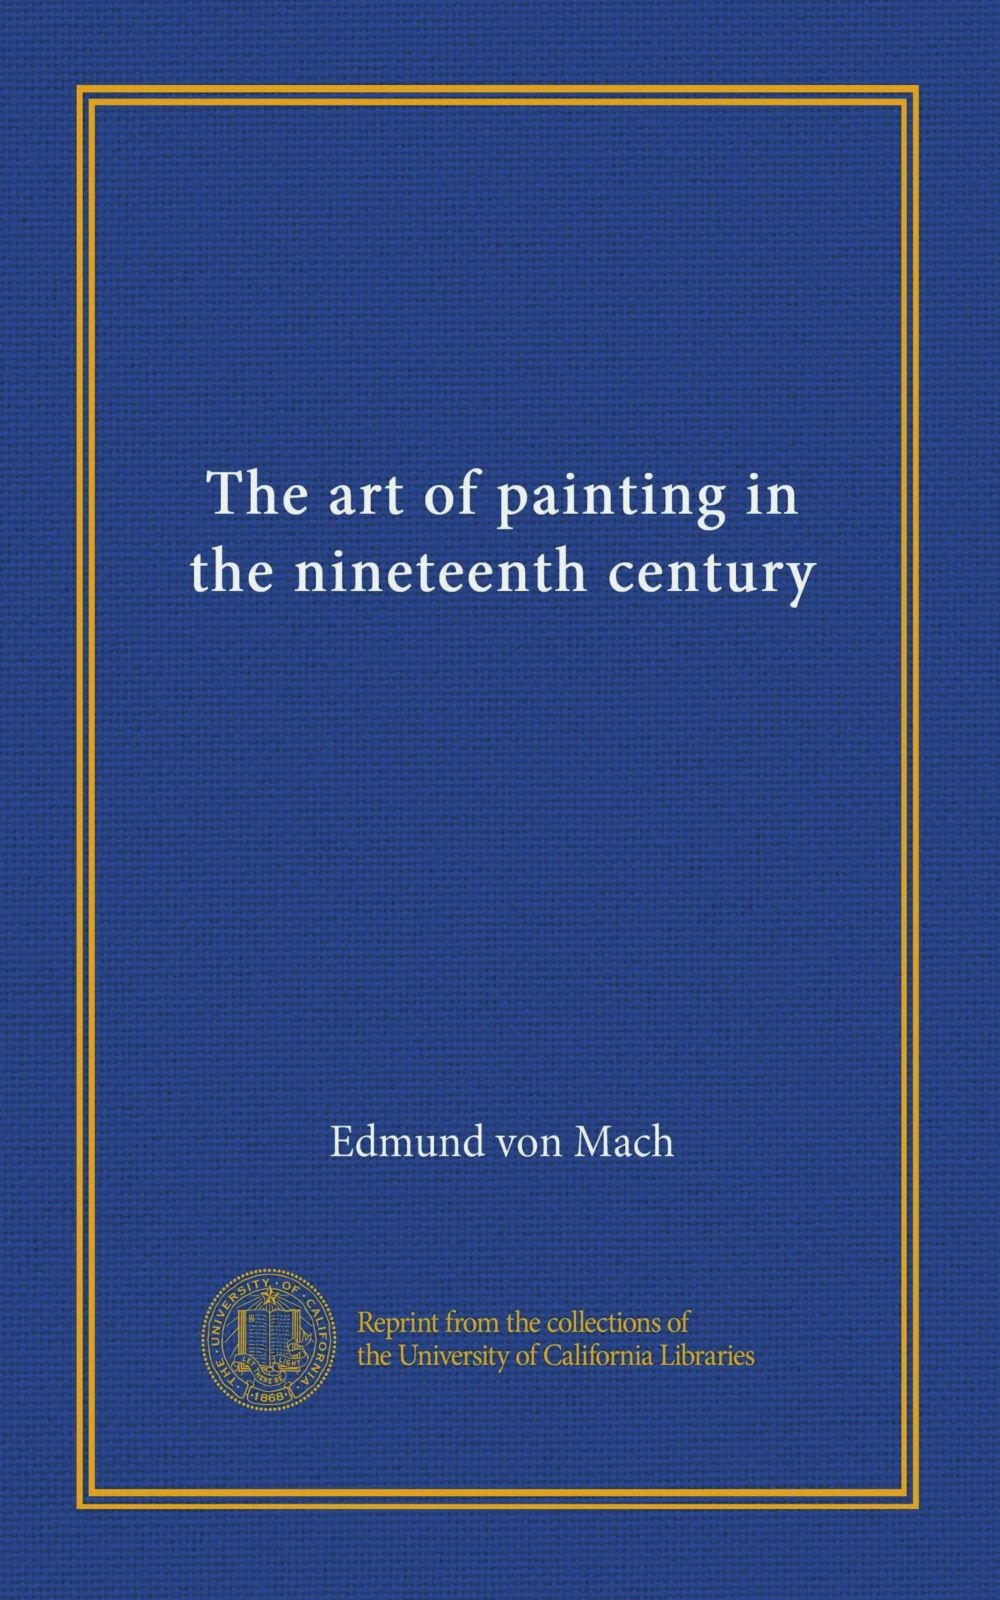 Download The art of painting in the nineteenth century (Vol-1) PDF